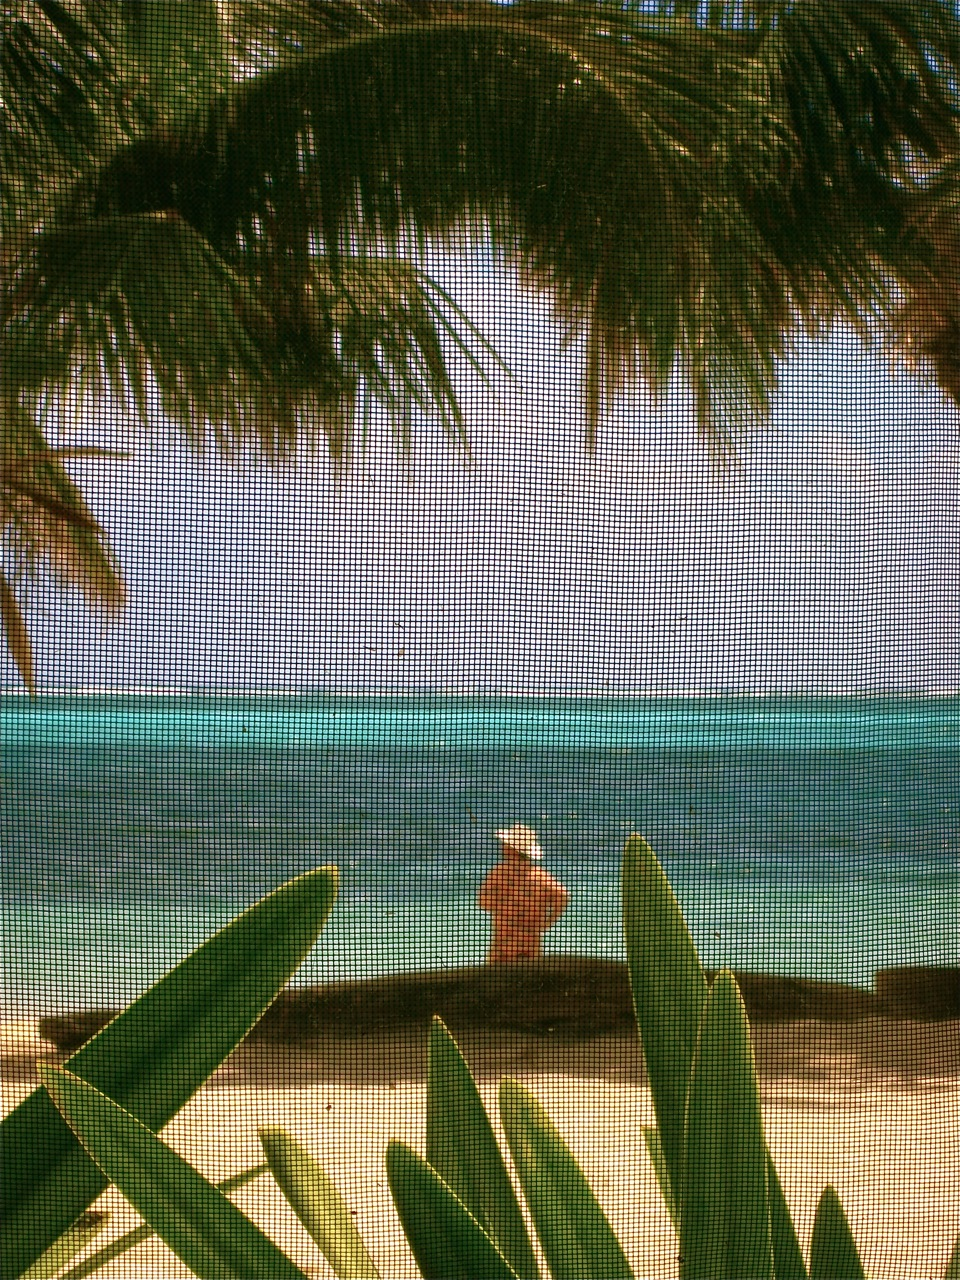 A view of the Caye Caulker beach through a screened window.